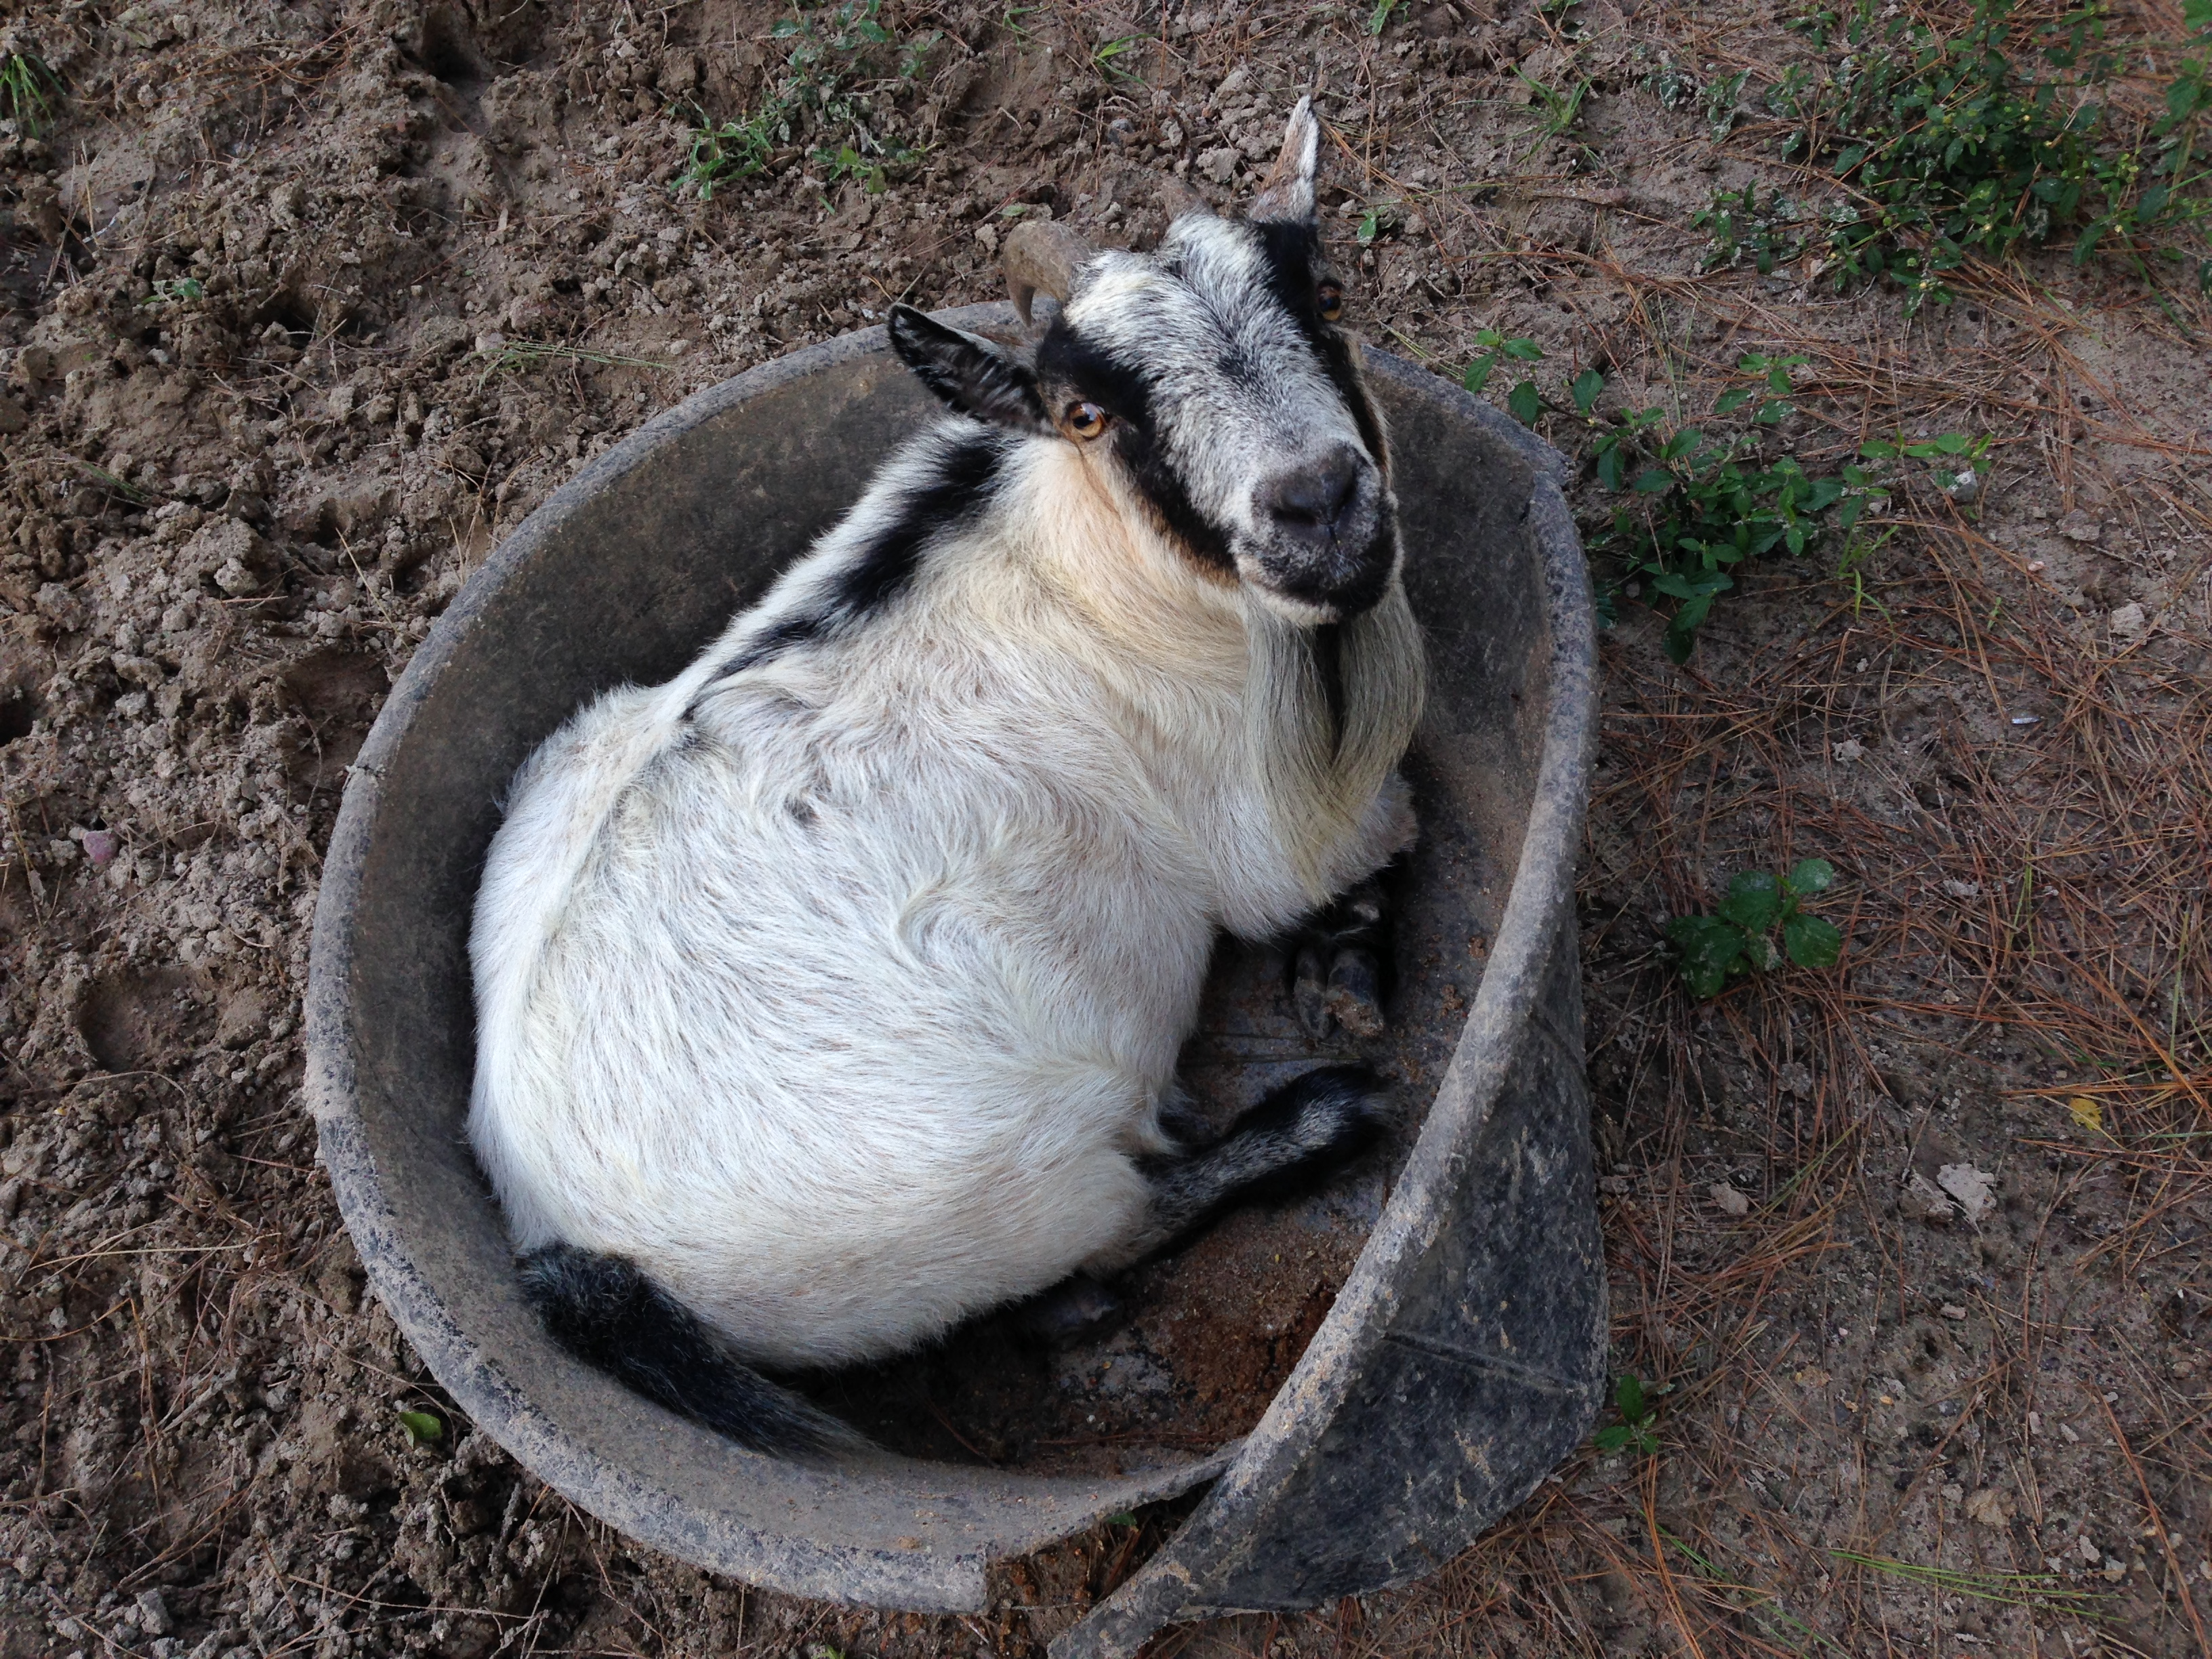 nesting goat links